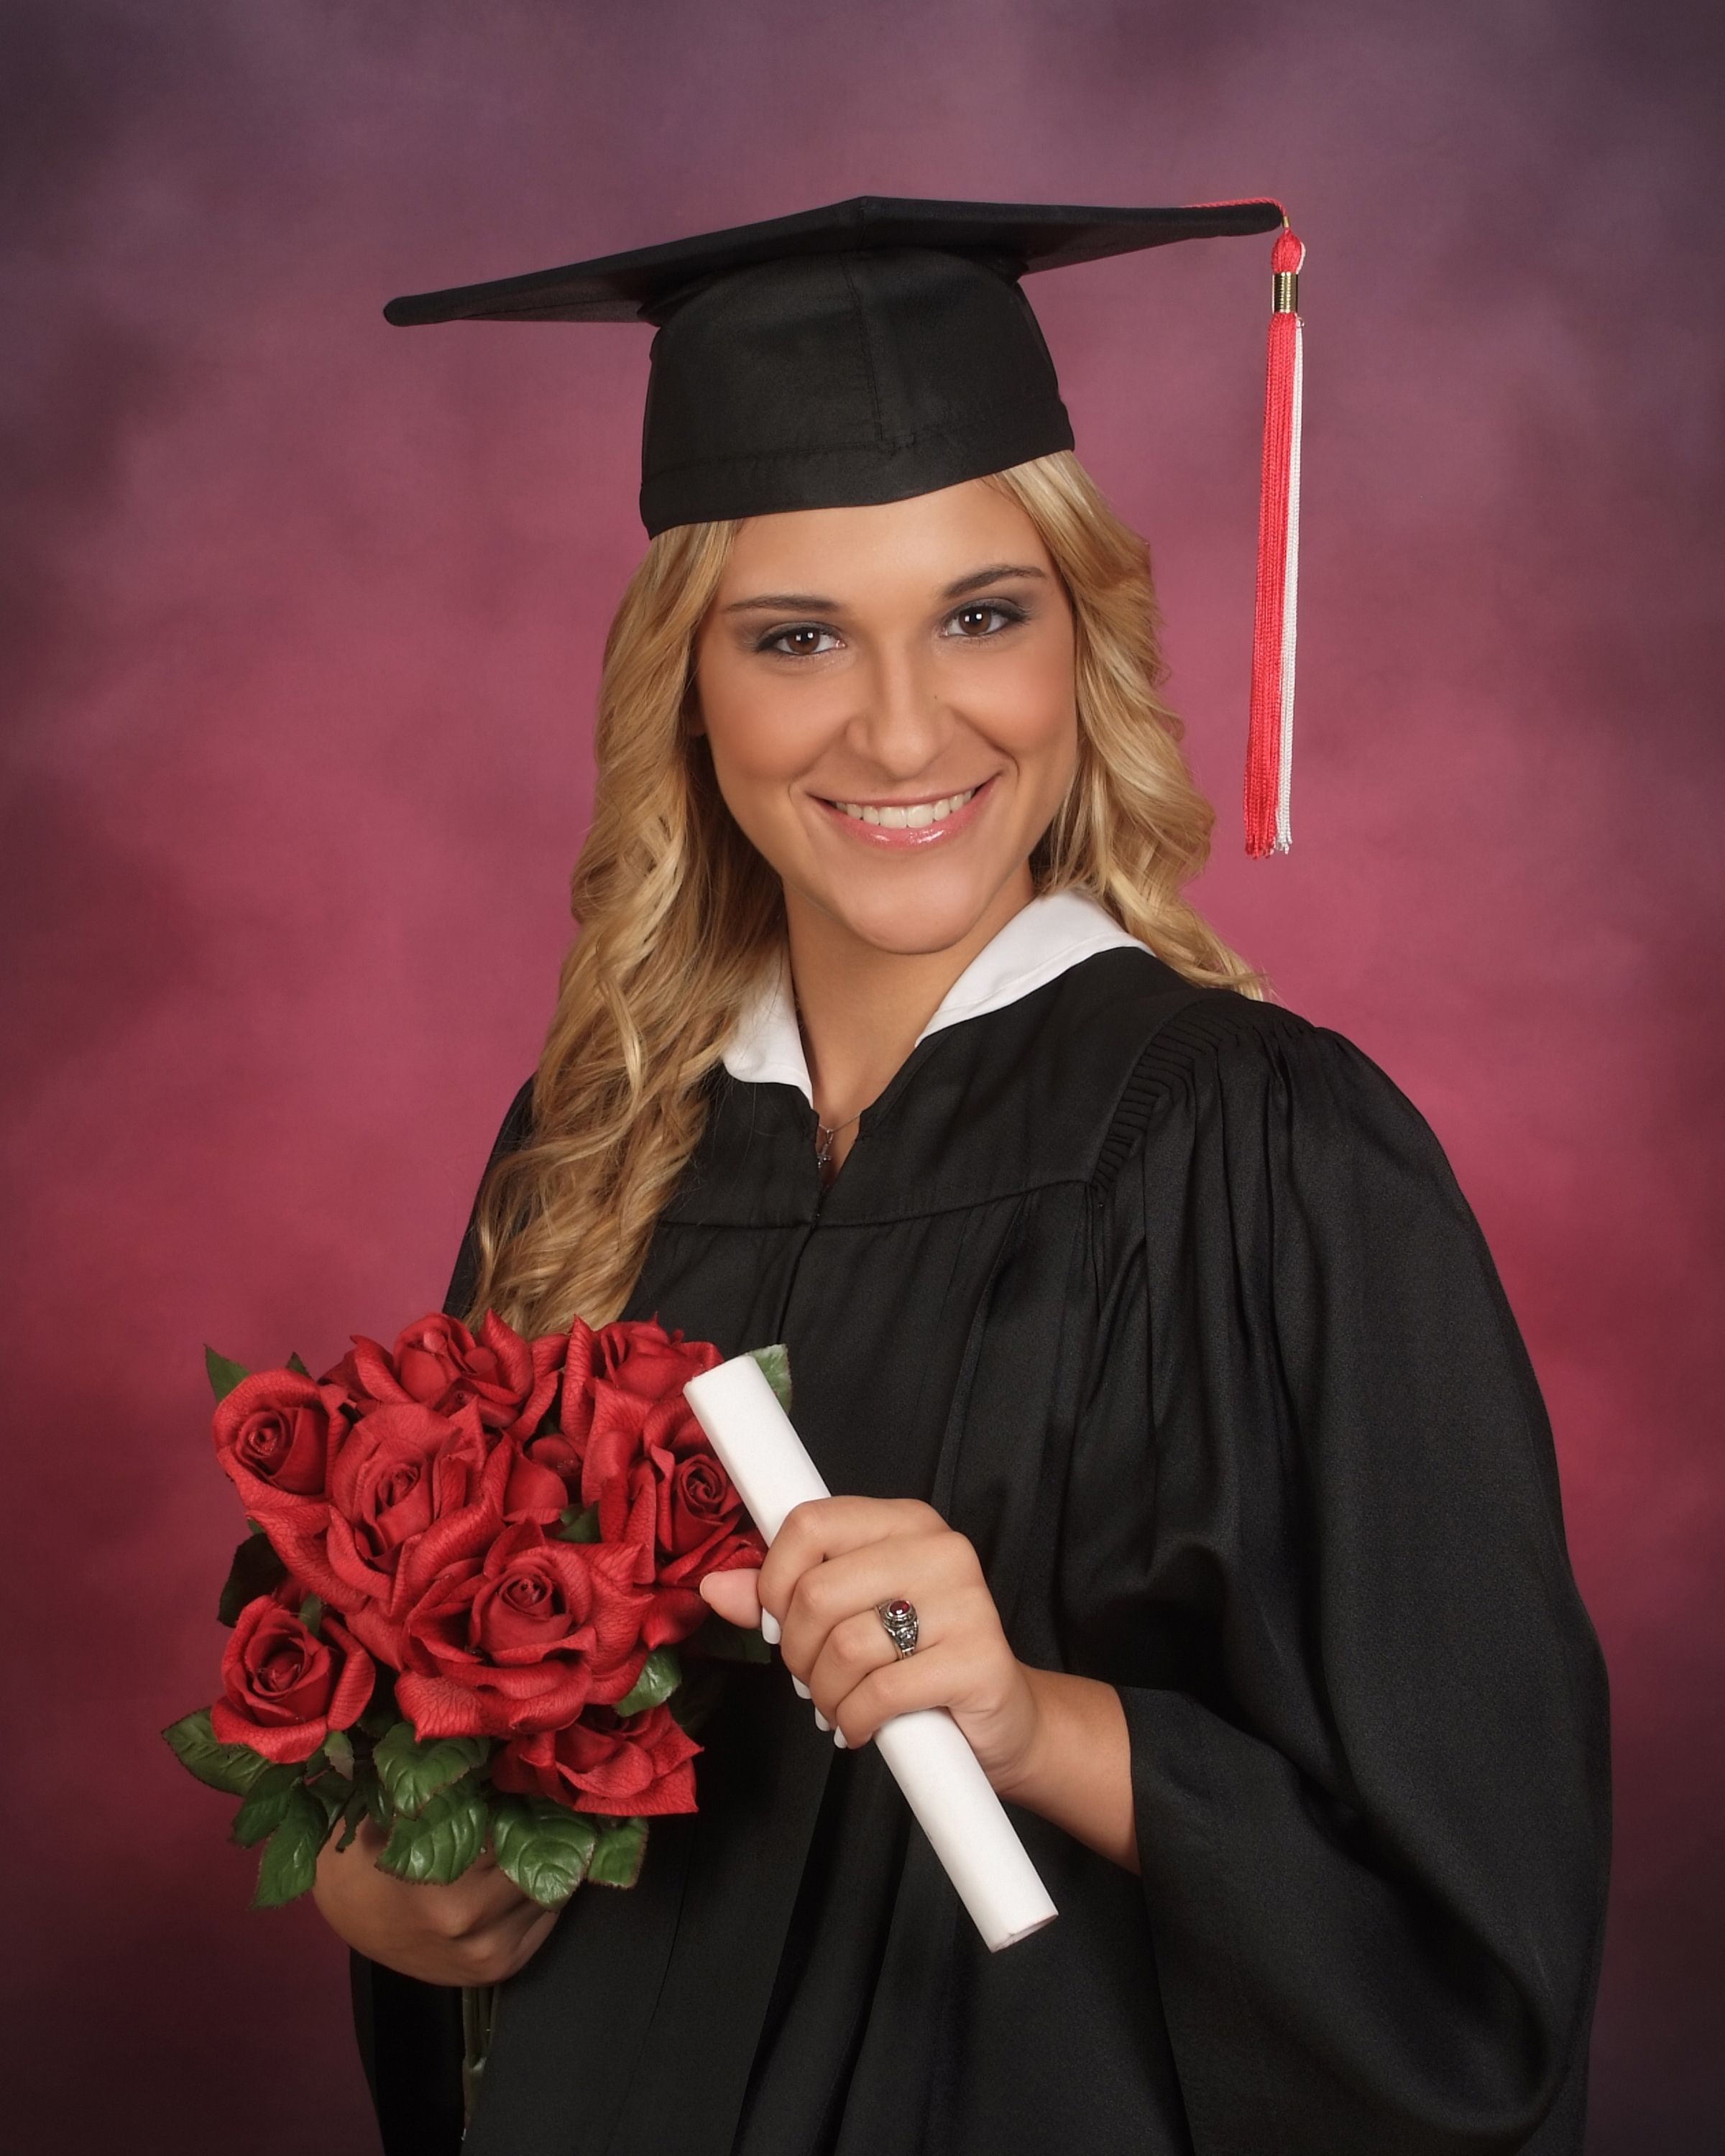 Cap & Gown yearbook portrait | Senior Portraits | Pinterest ...